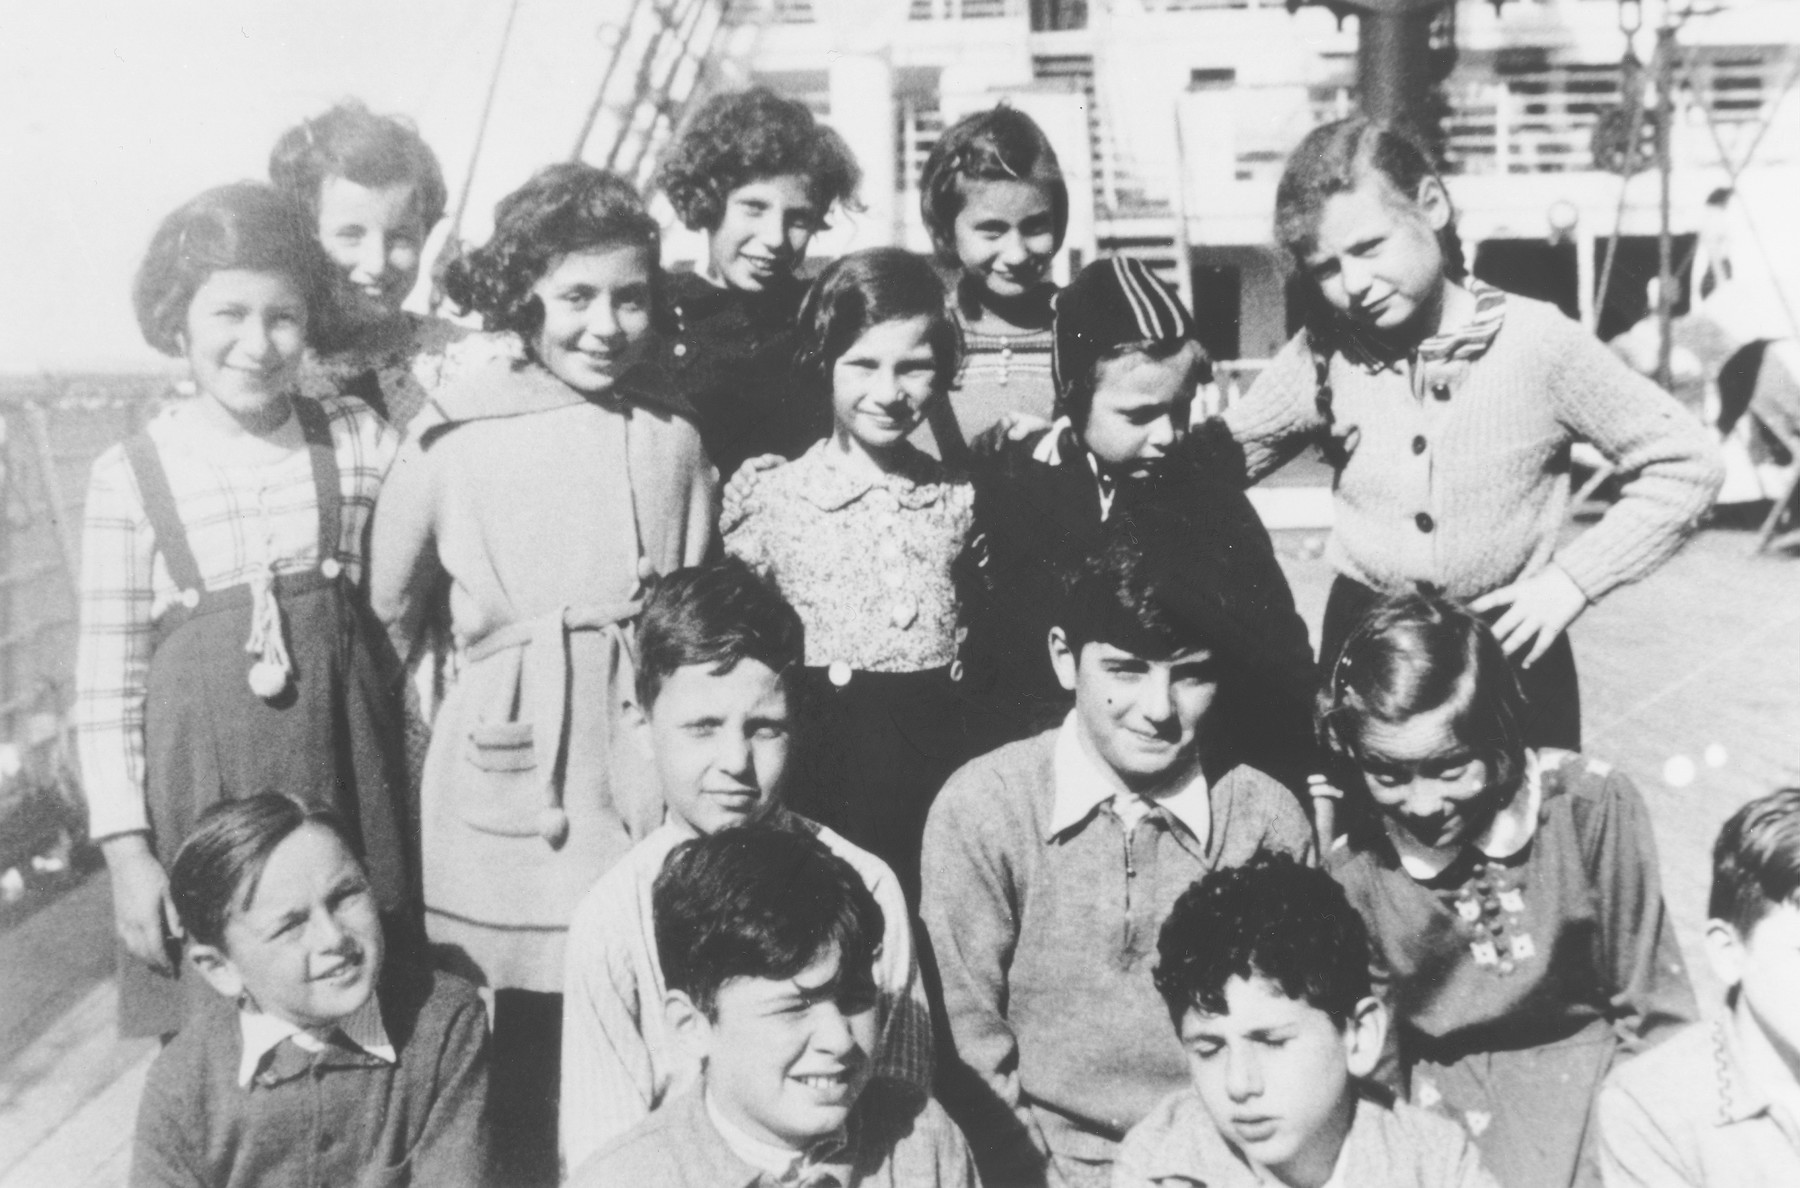 Group portrait of German Jewish refugee children on the deck of the SS Orama while en route to Australia.  Pictured are Marion Ehrlich, Ilse Frank, Margot Goldstein, Ellen Schaechter, Ellen Rothschild, Betty Abramson, Edna Lehmann, Jo Lehmann, Herman Gold, Rolf Taylor, George Dreyfus, Richard Dreyfus, Laurie Badrian, Ellen Lewinski and Alfred Stocks.